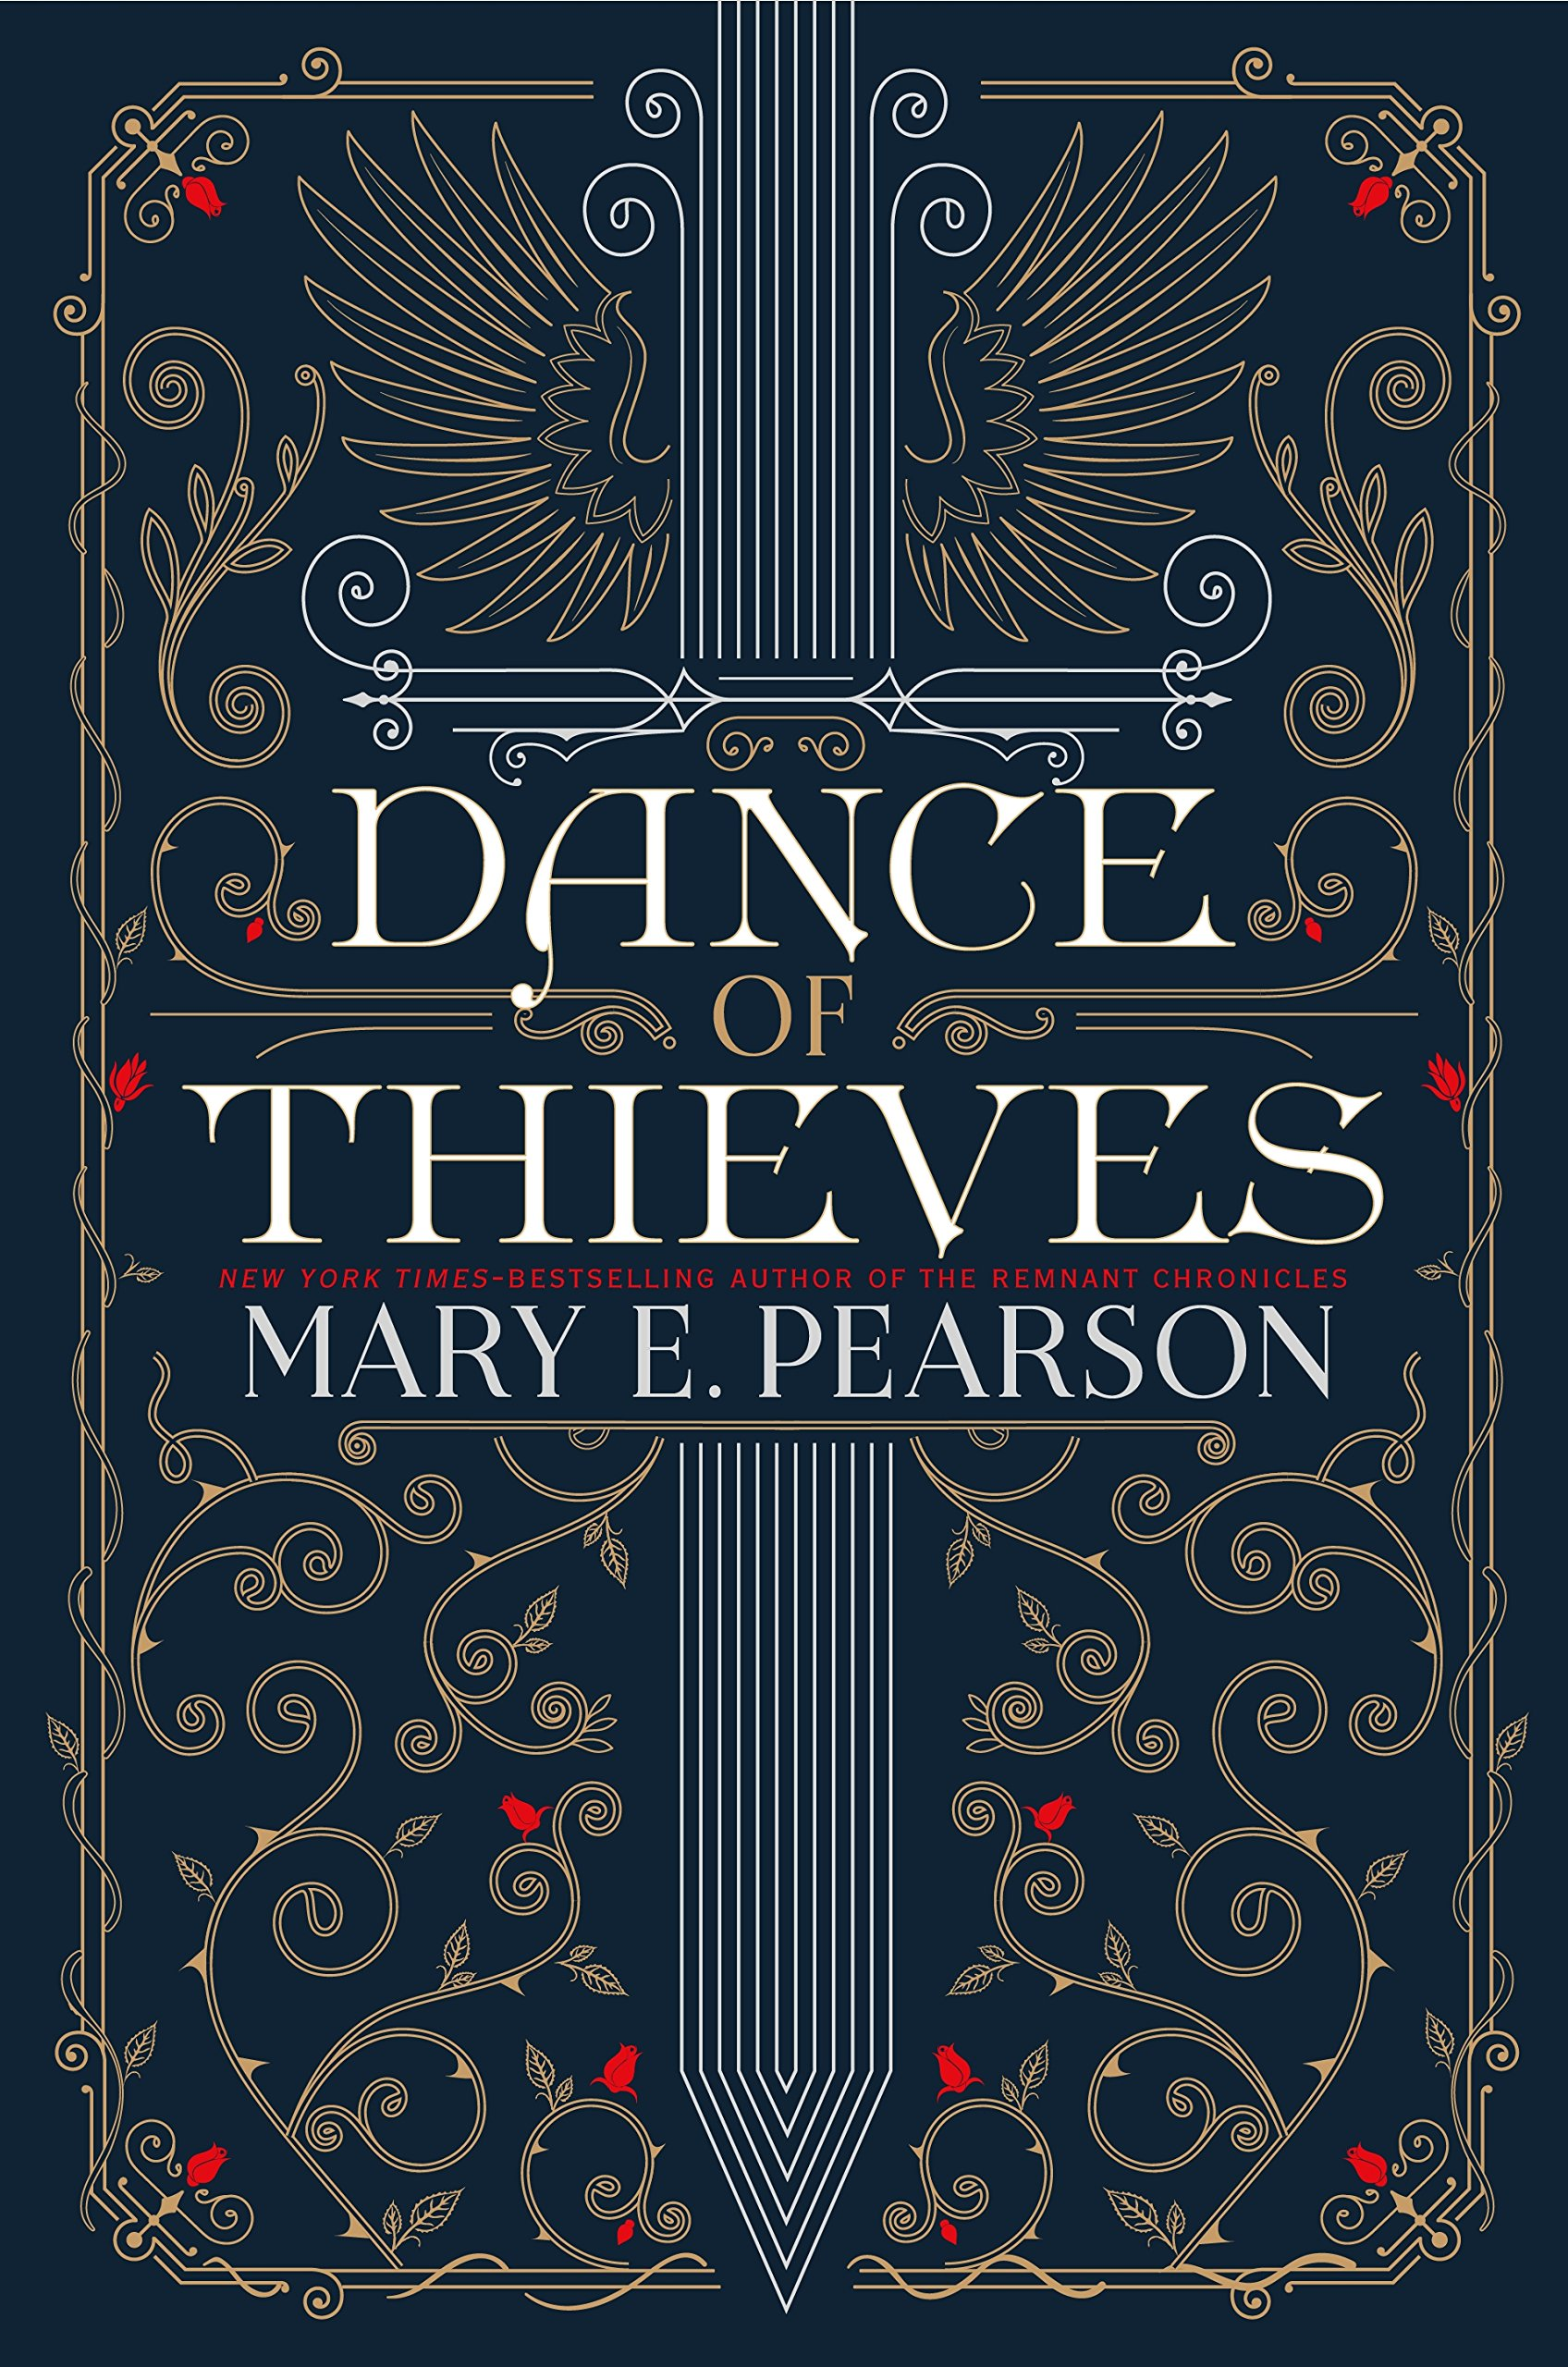 Image result for dance of thieves cover